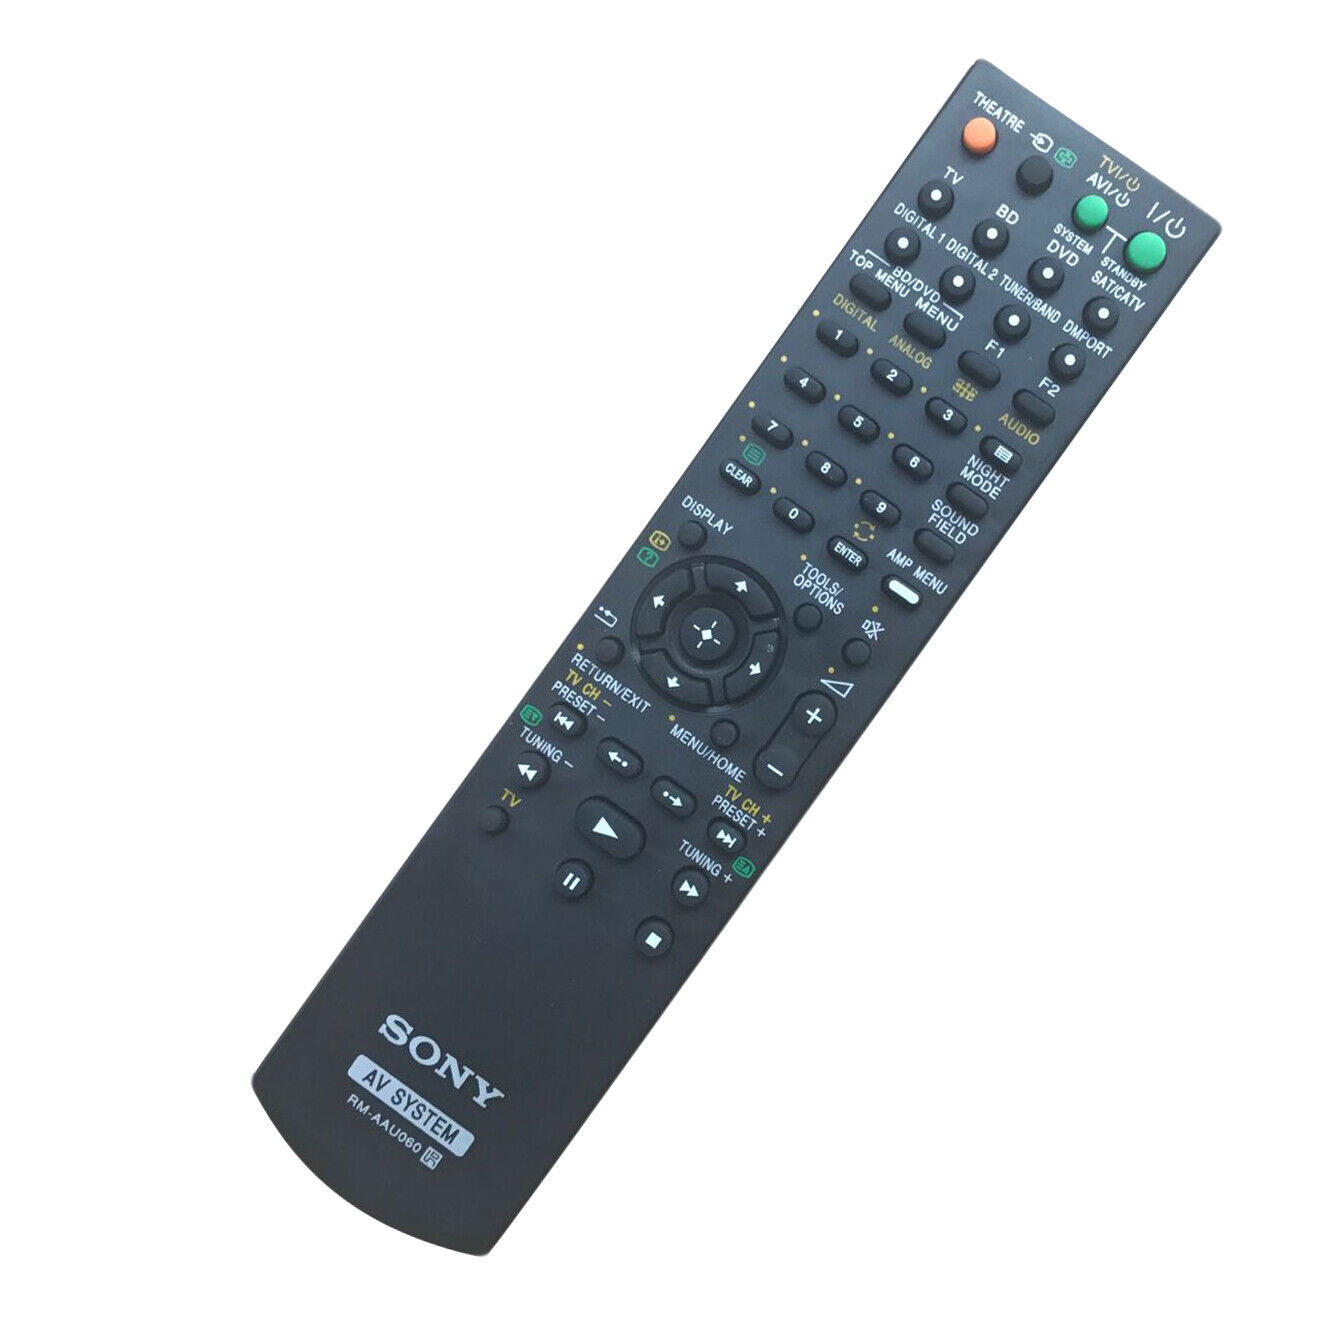 New Remote Control Replace For Sony RM-AAU029 ,HT-CT100, SS-